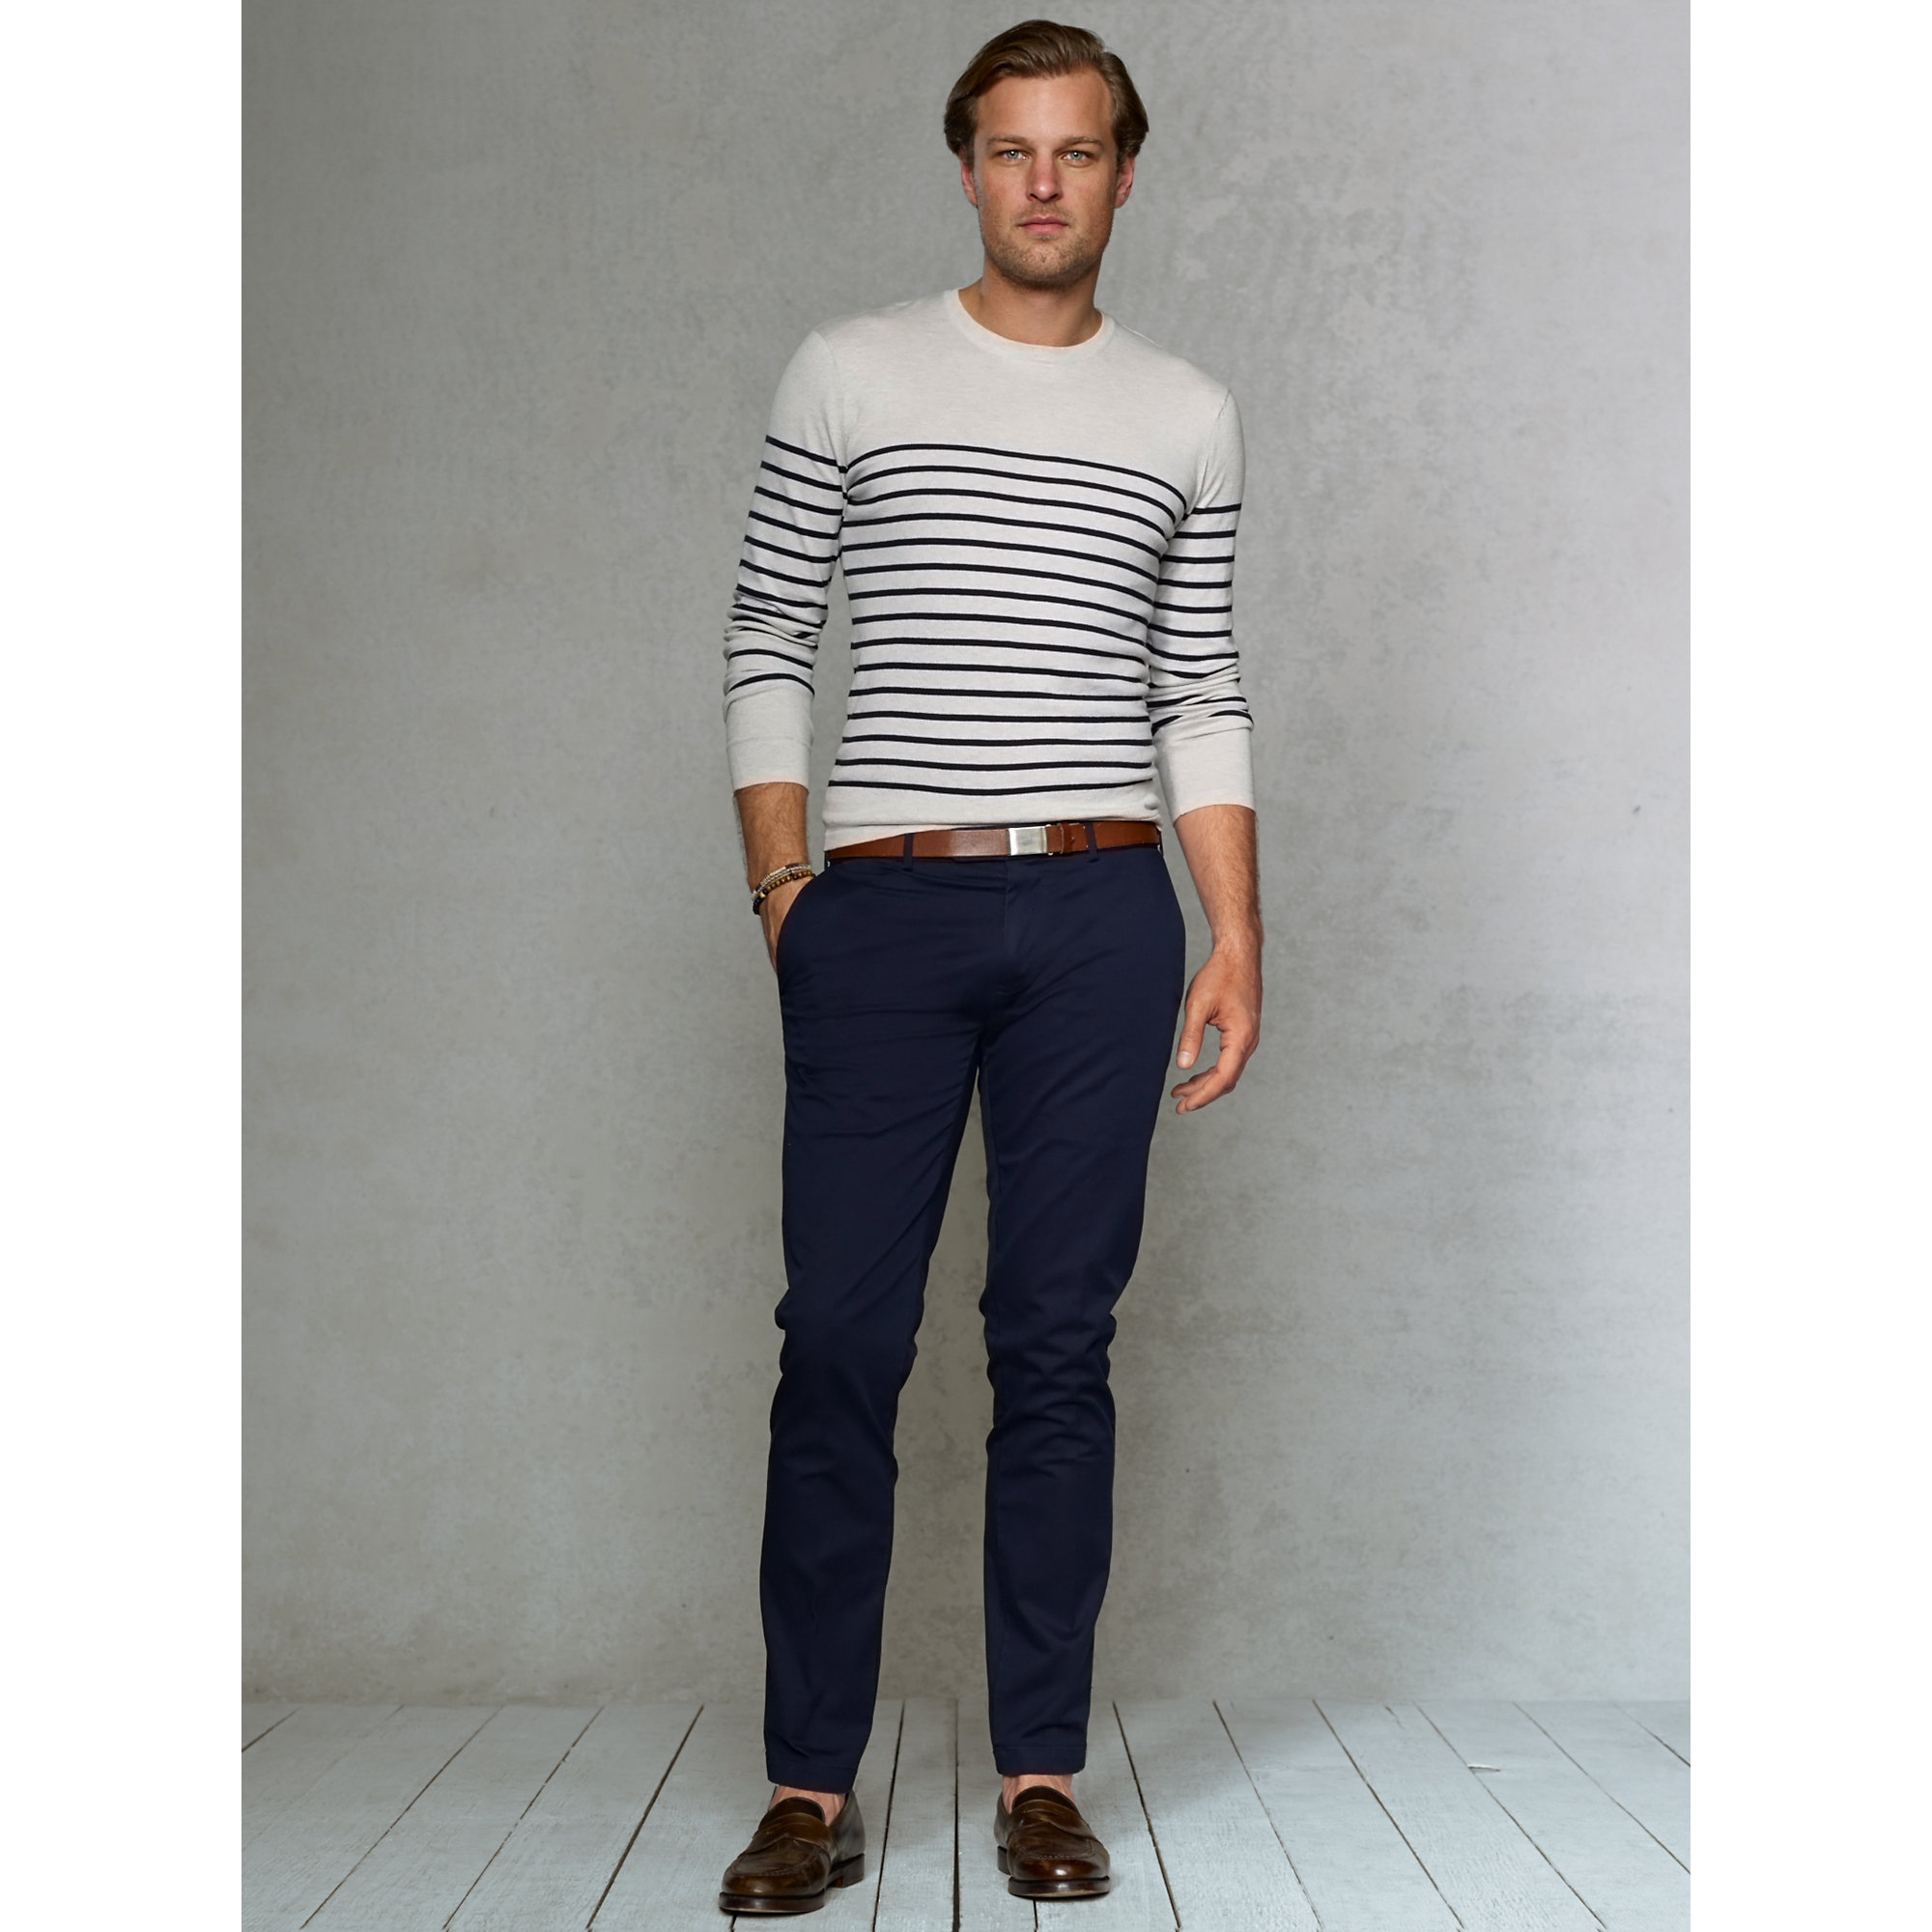 Lyst Polo Ralph Lauren Slim Fit Stretch Chino Pant In